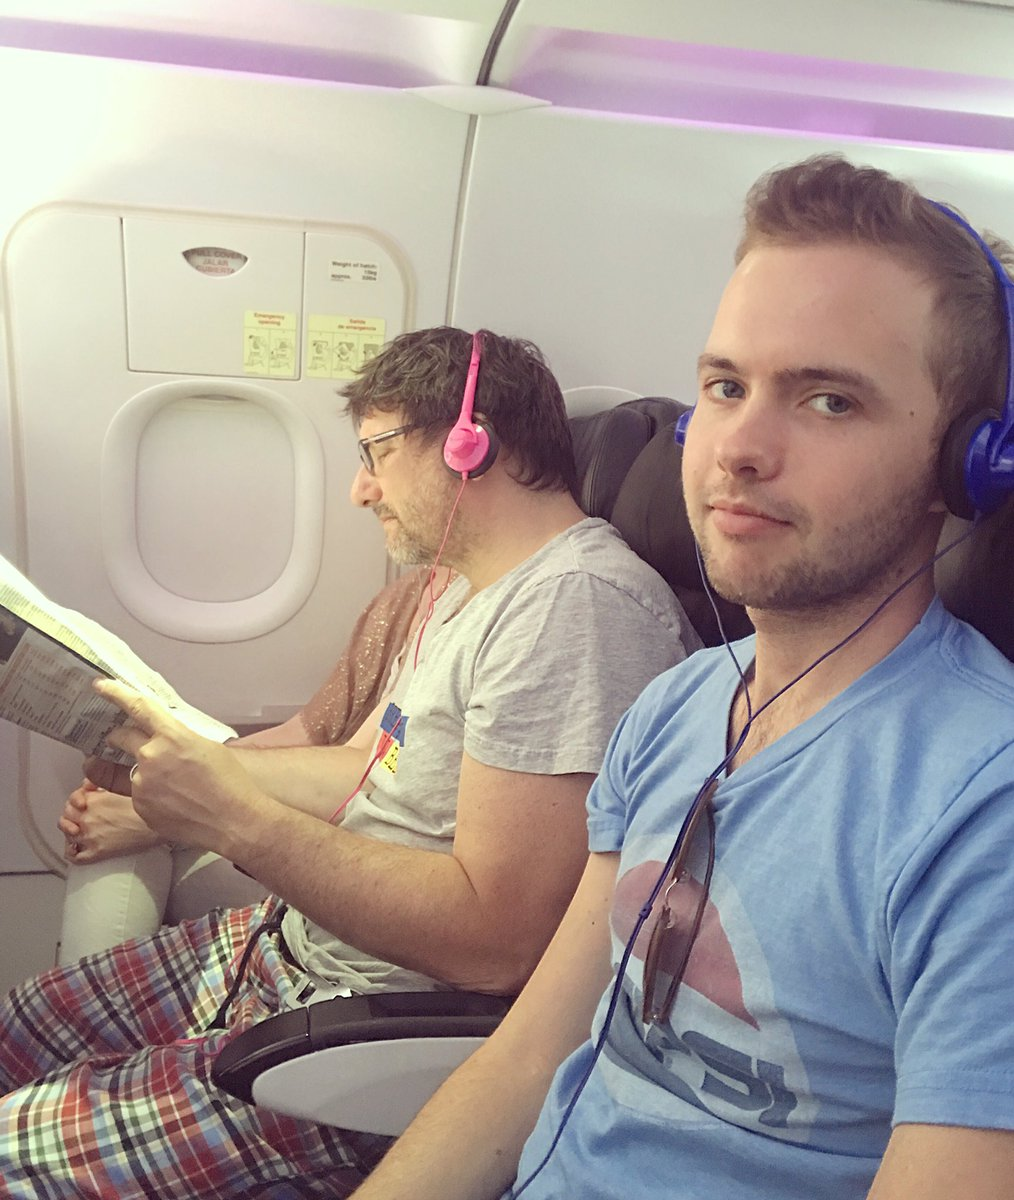 ryland dating Ryland adams' romantic union after months of speculation around the relationship between ryland and youtube star shane dawson, they finally confirmed their dating.